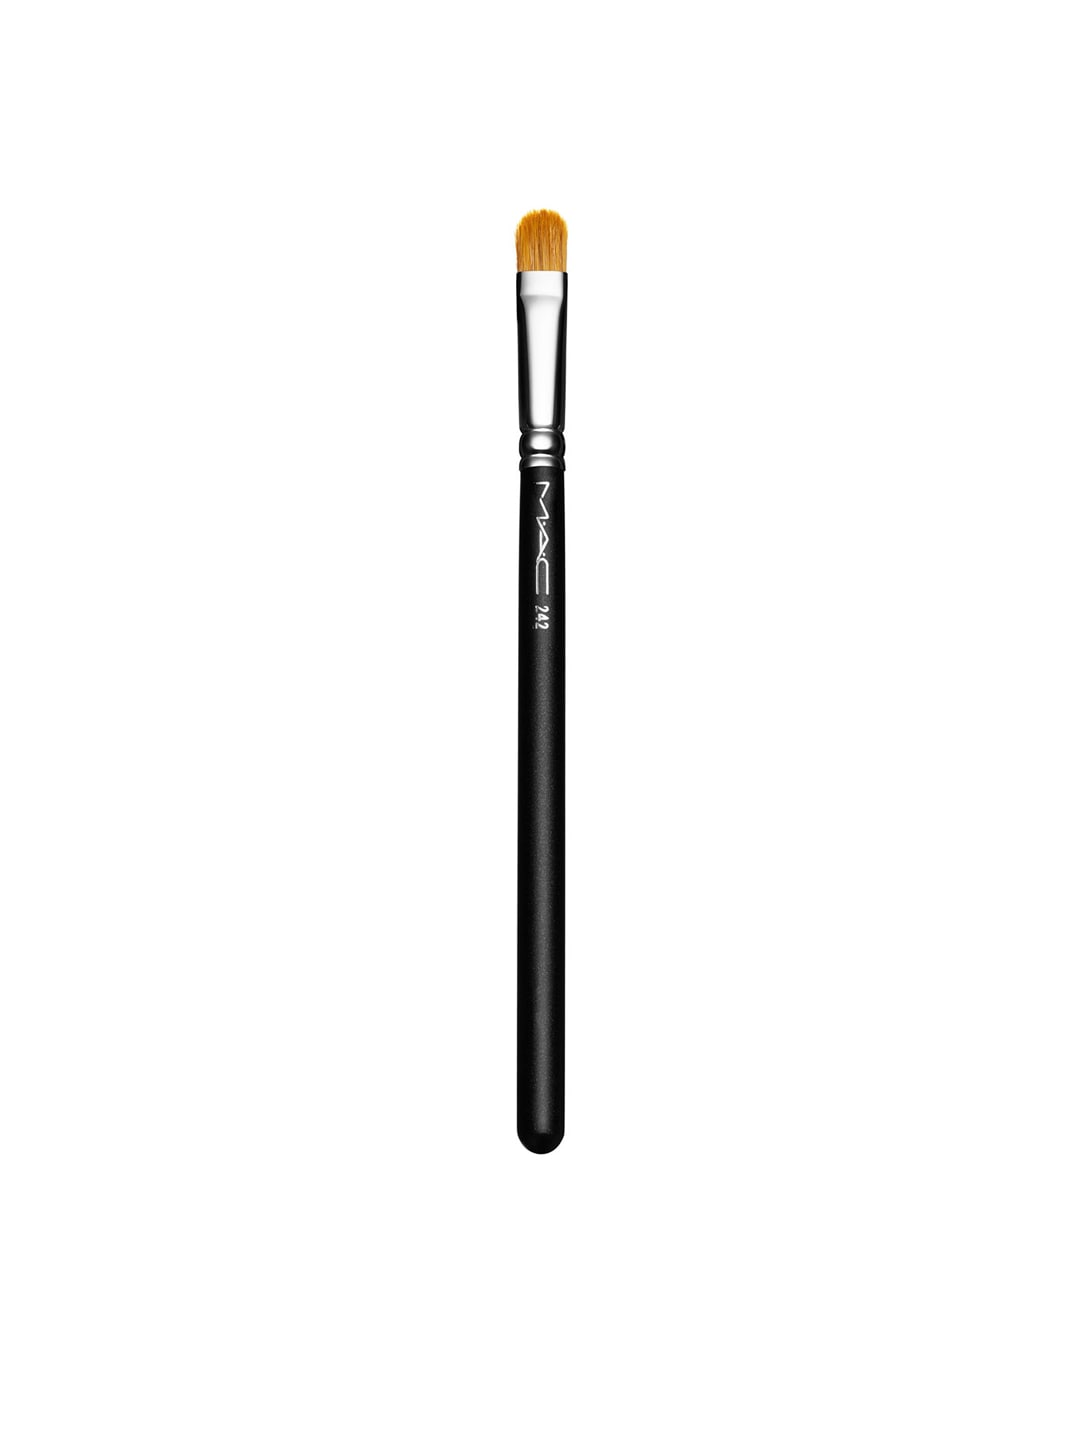 Buy Real Techniques Gold Toned Makeup Brush - Makeup Brushes for